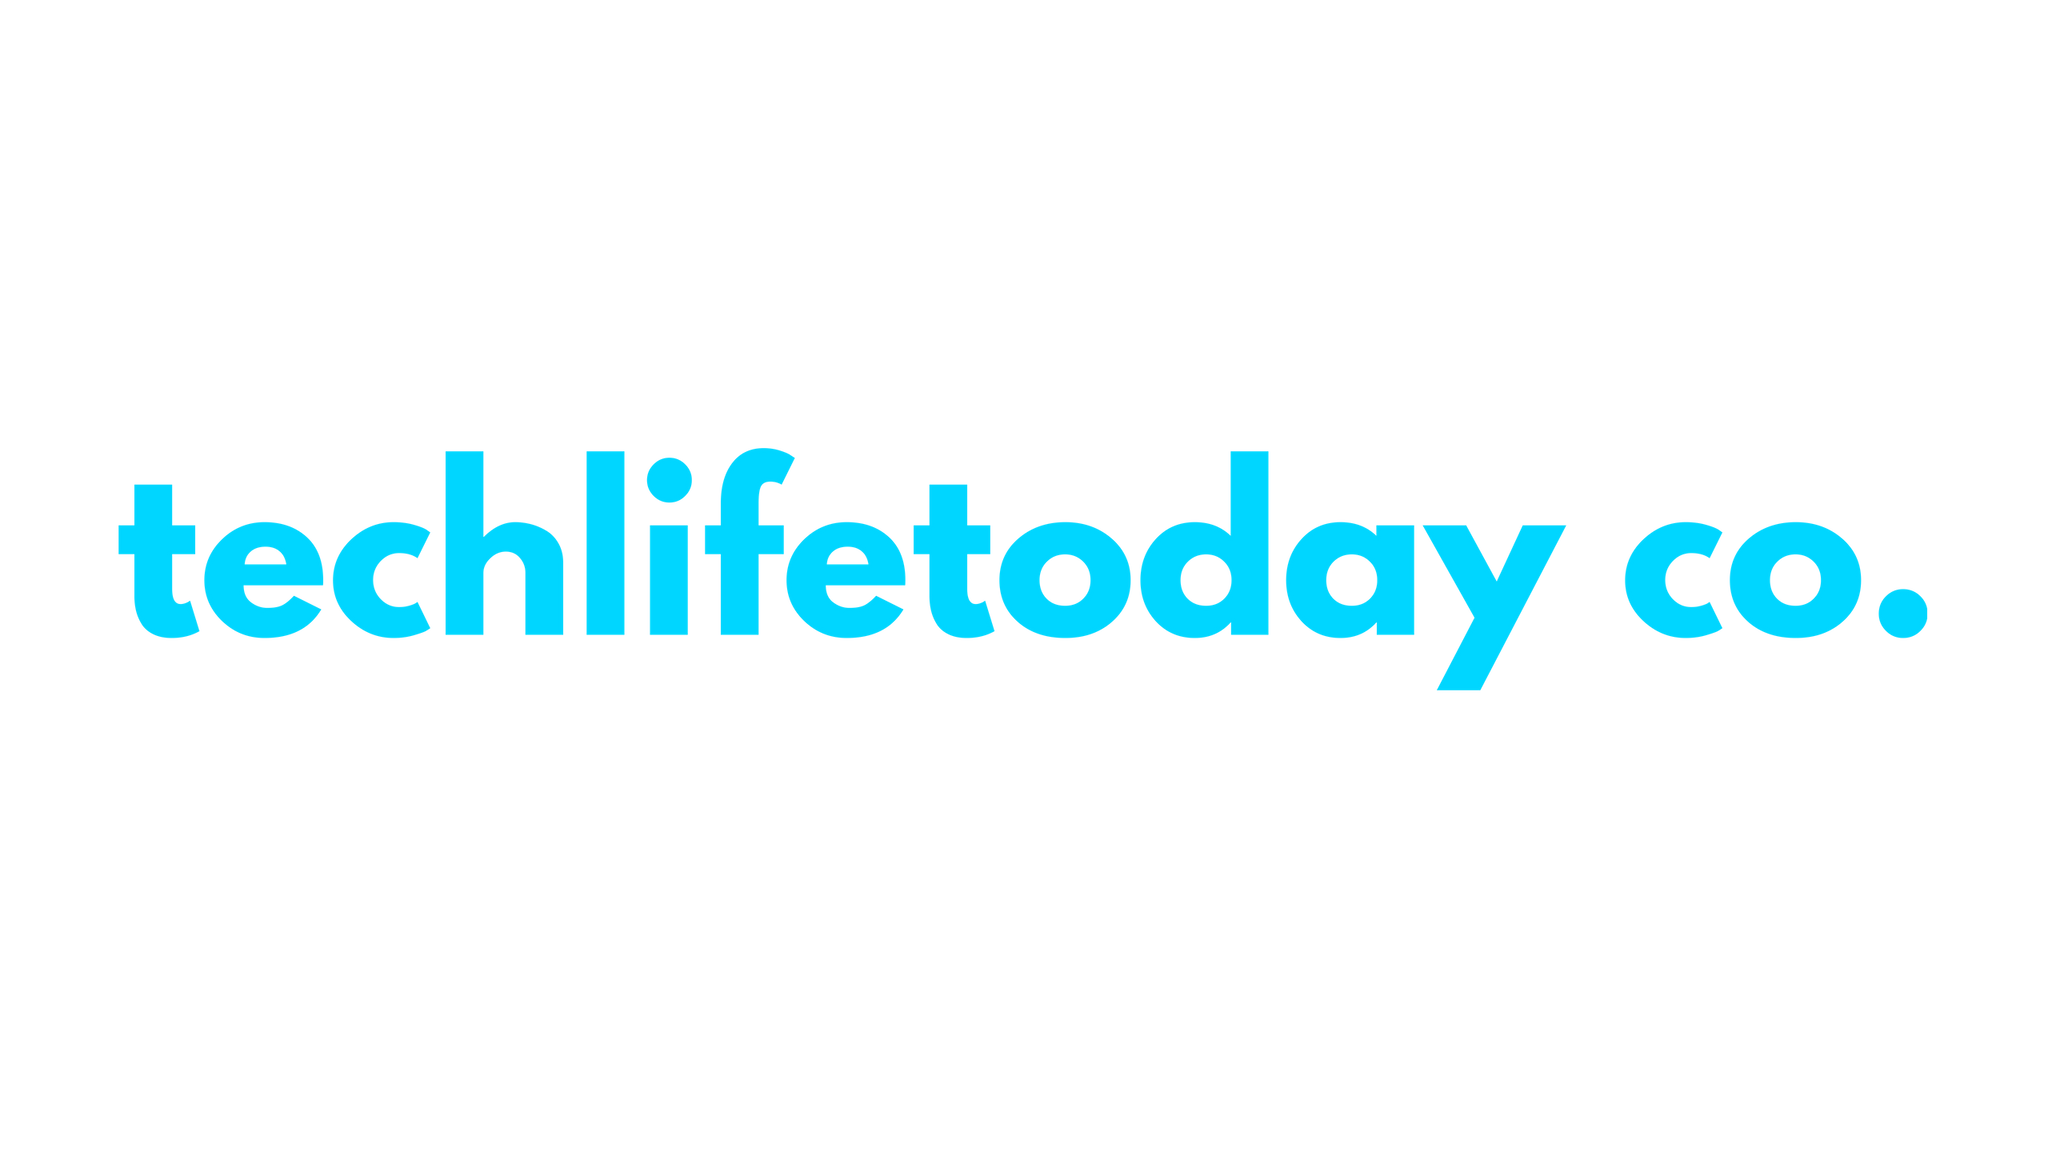 Introducing the New Techlifetoday Co.